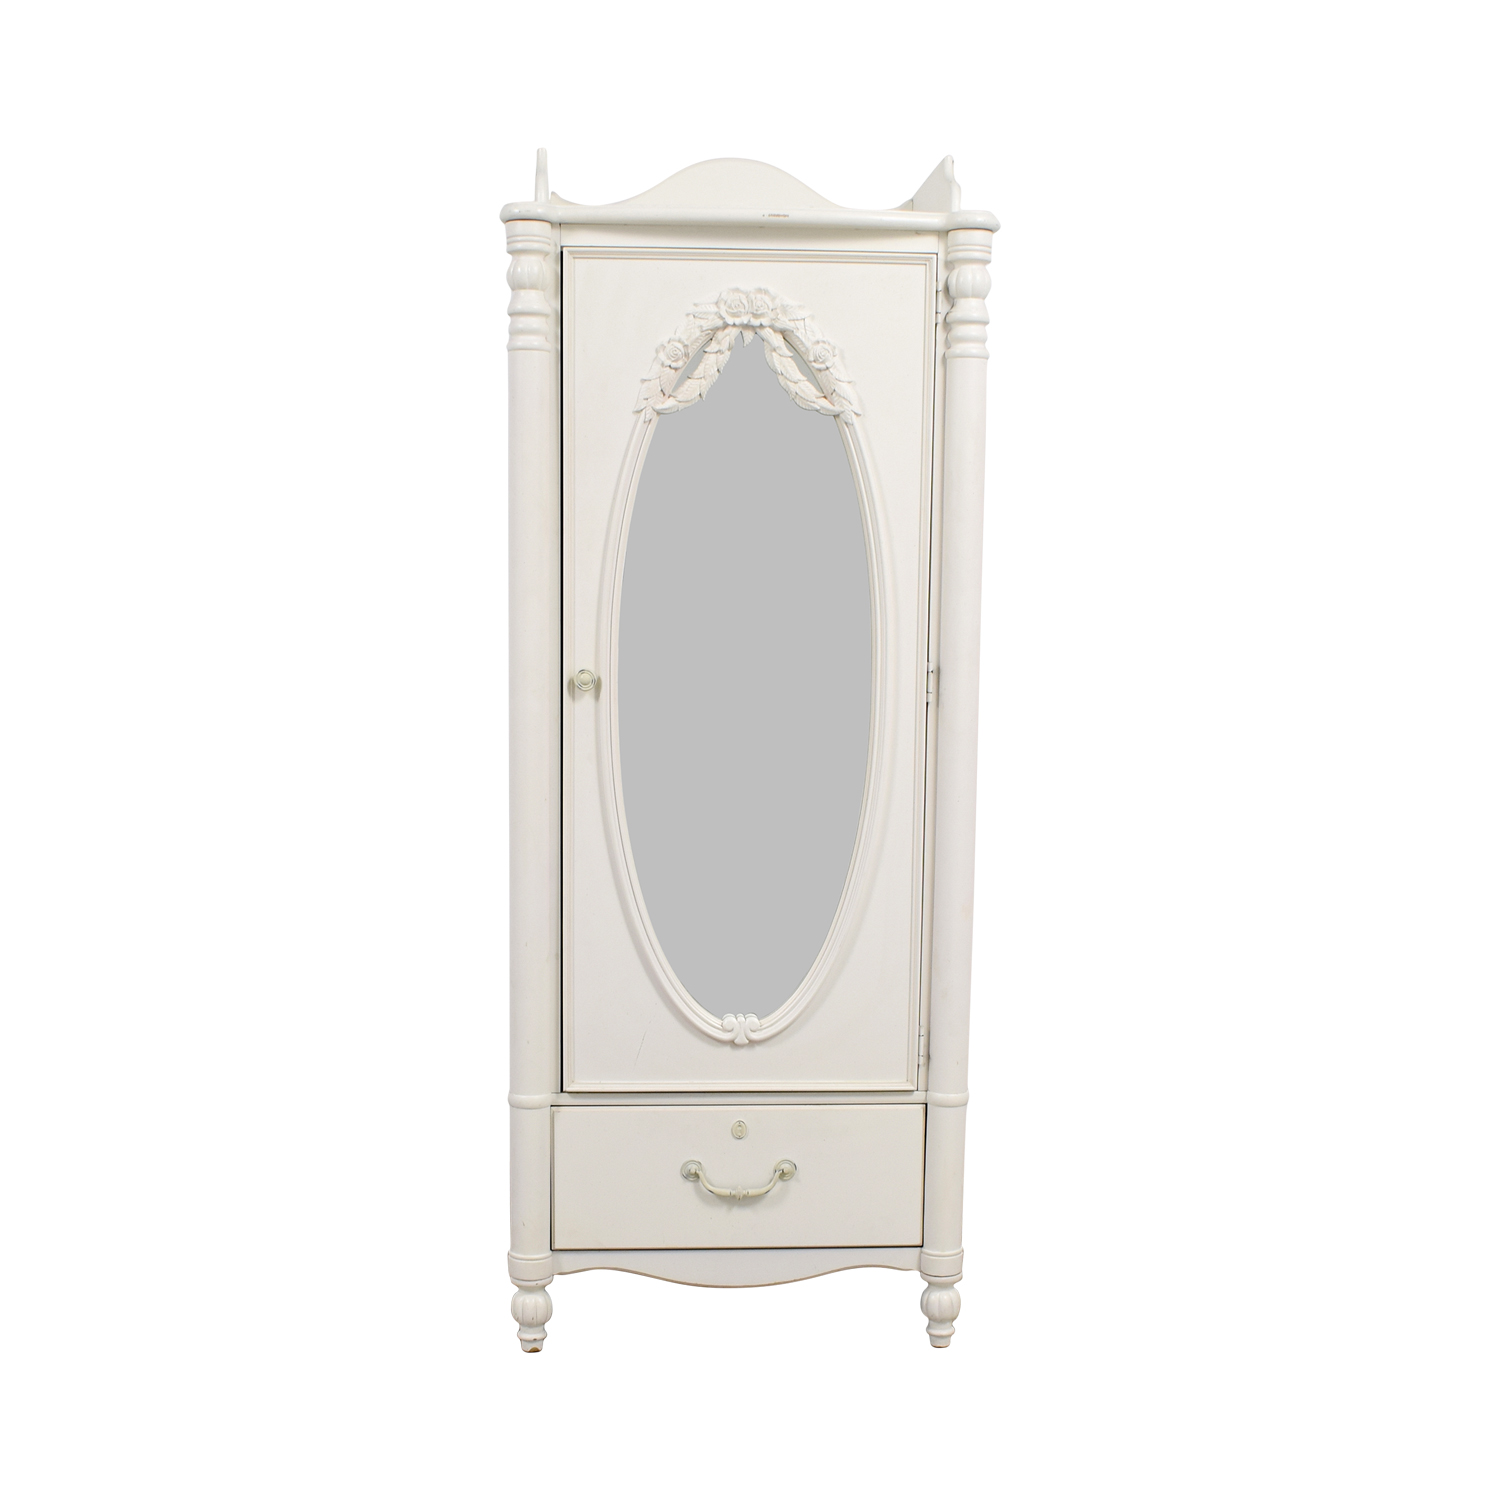 Stanley Home Furniture Stanley Home Furniture White Armoire with Exterior Mirror Wardrobes & Armoires